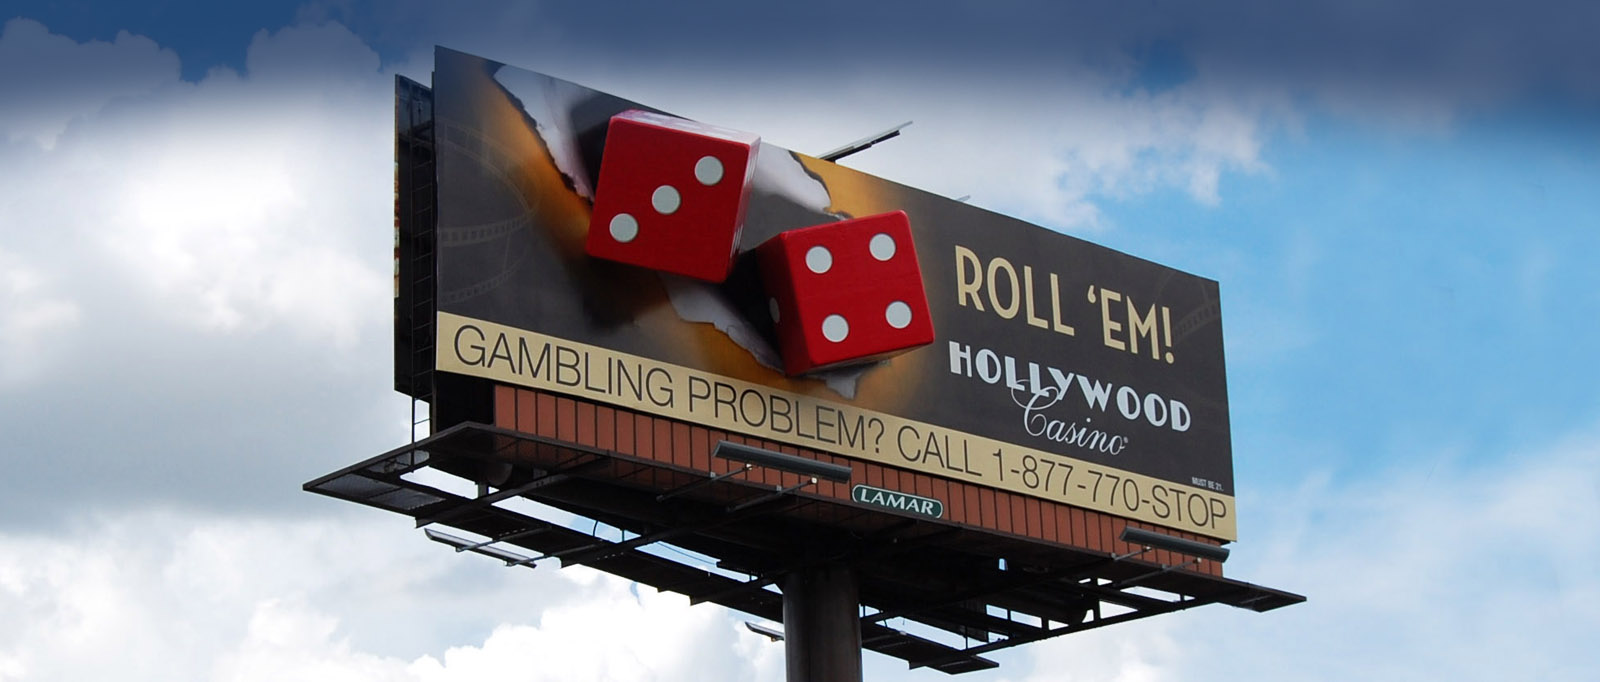 Casino billboards solutions to gambling addiction singapore